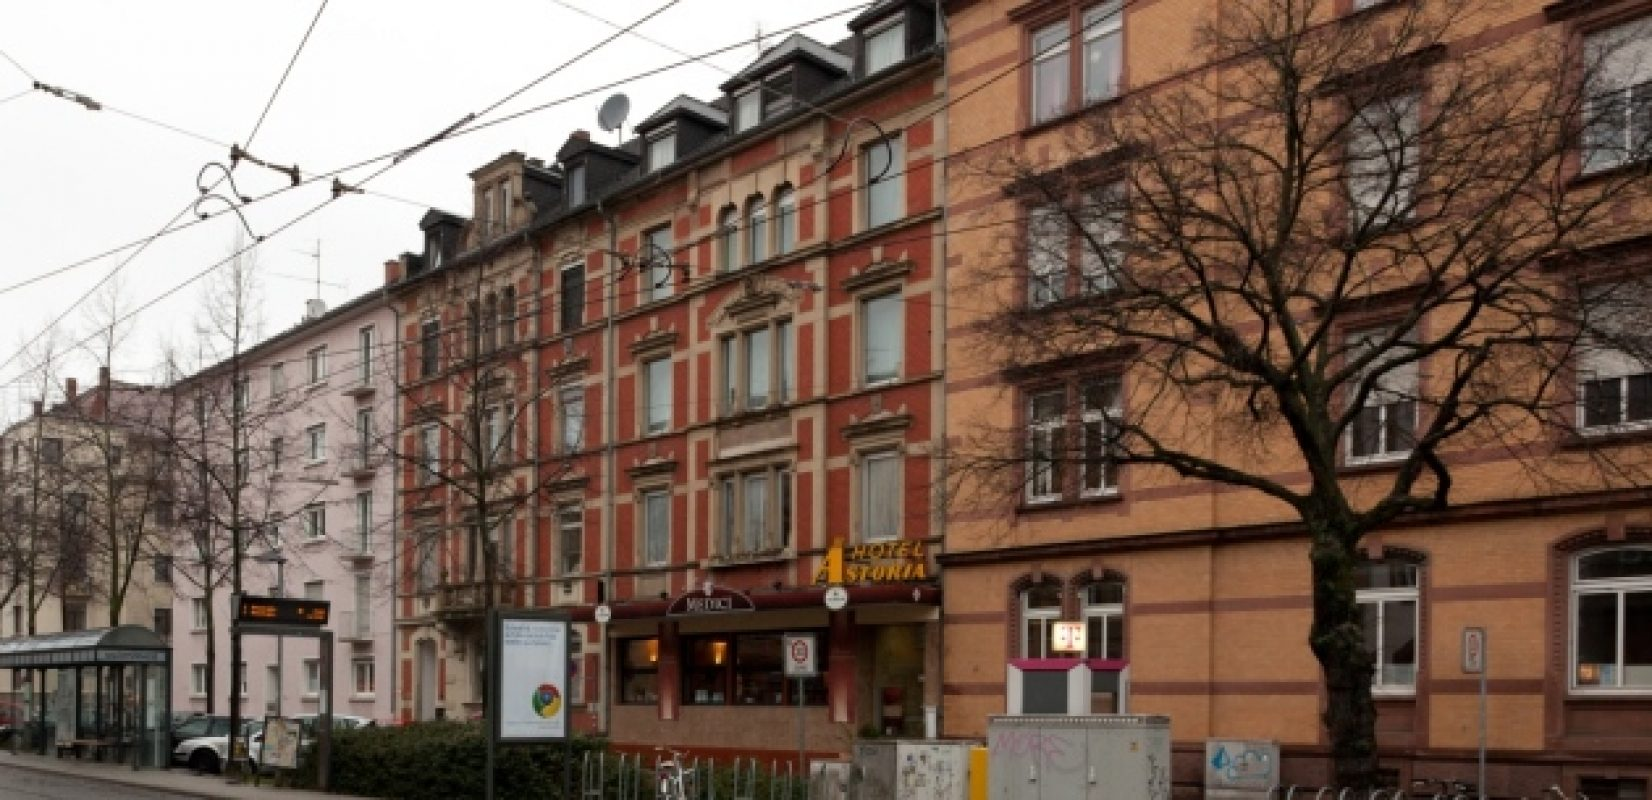 Steakhouse Karlsruhe hotel astoria karlsruhe city center hotel with ideal location